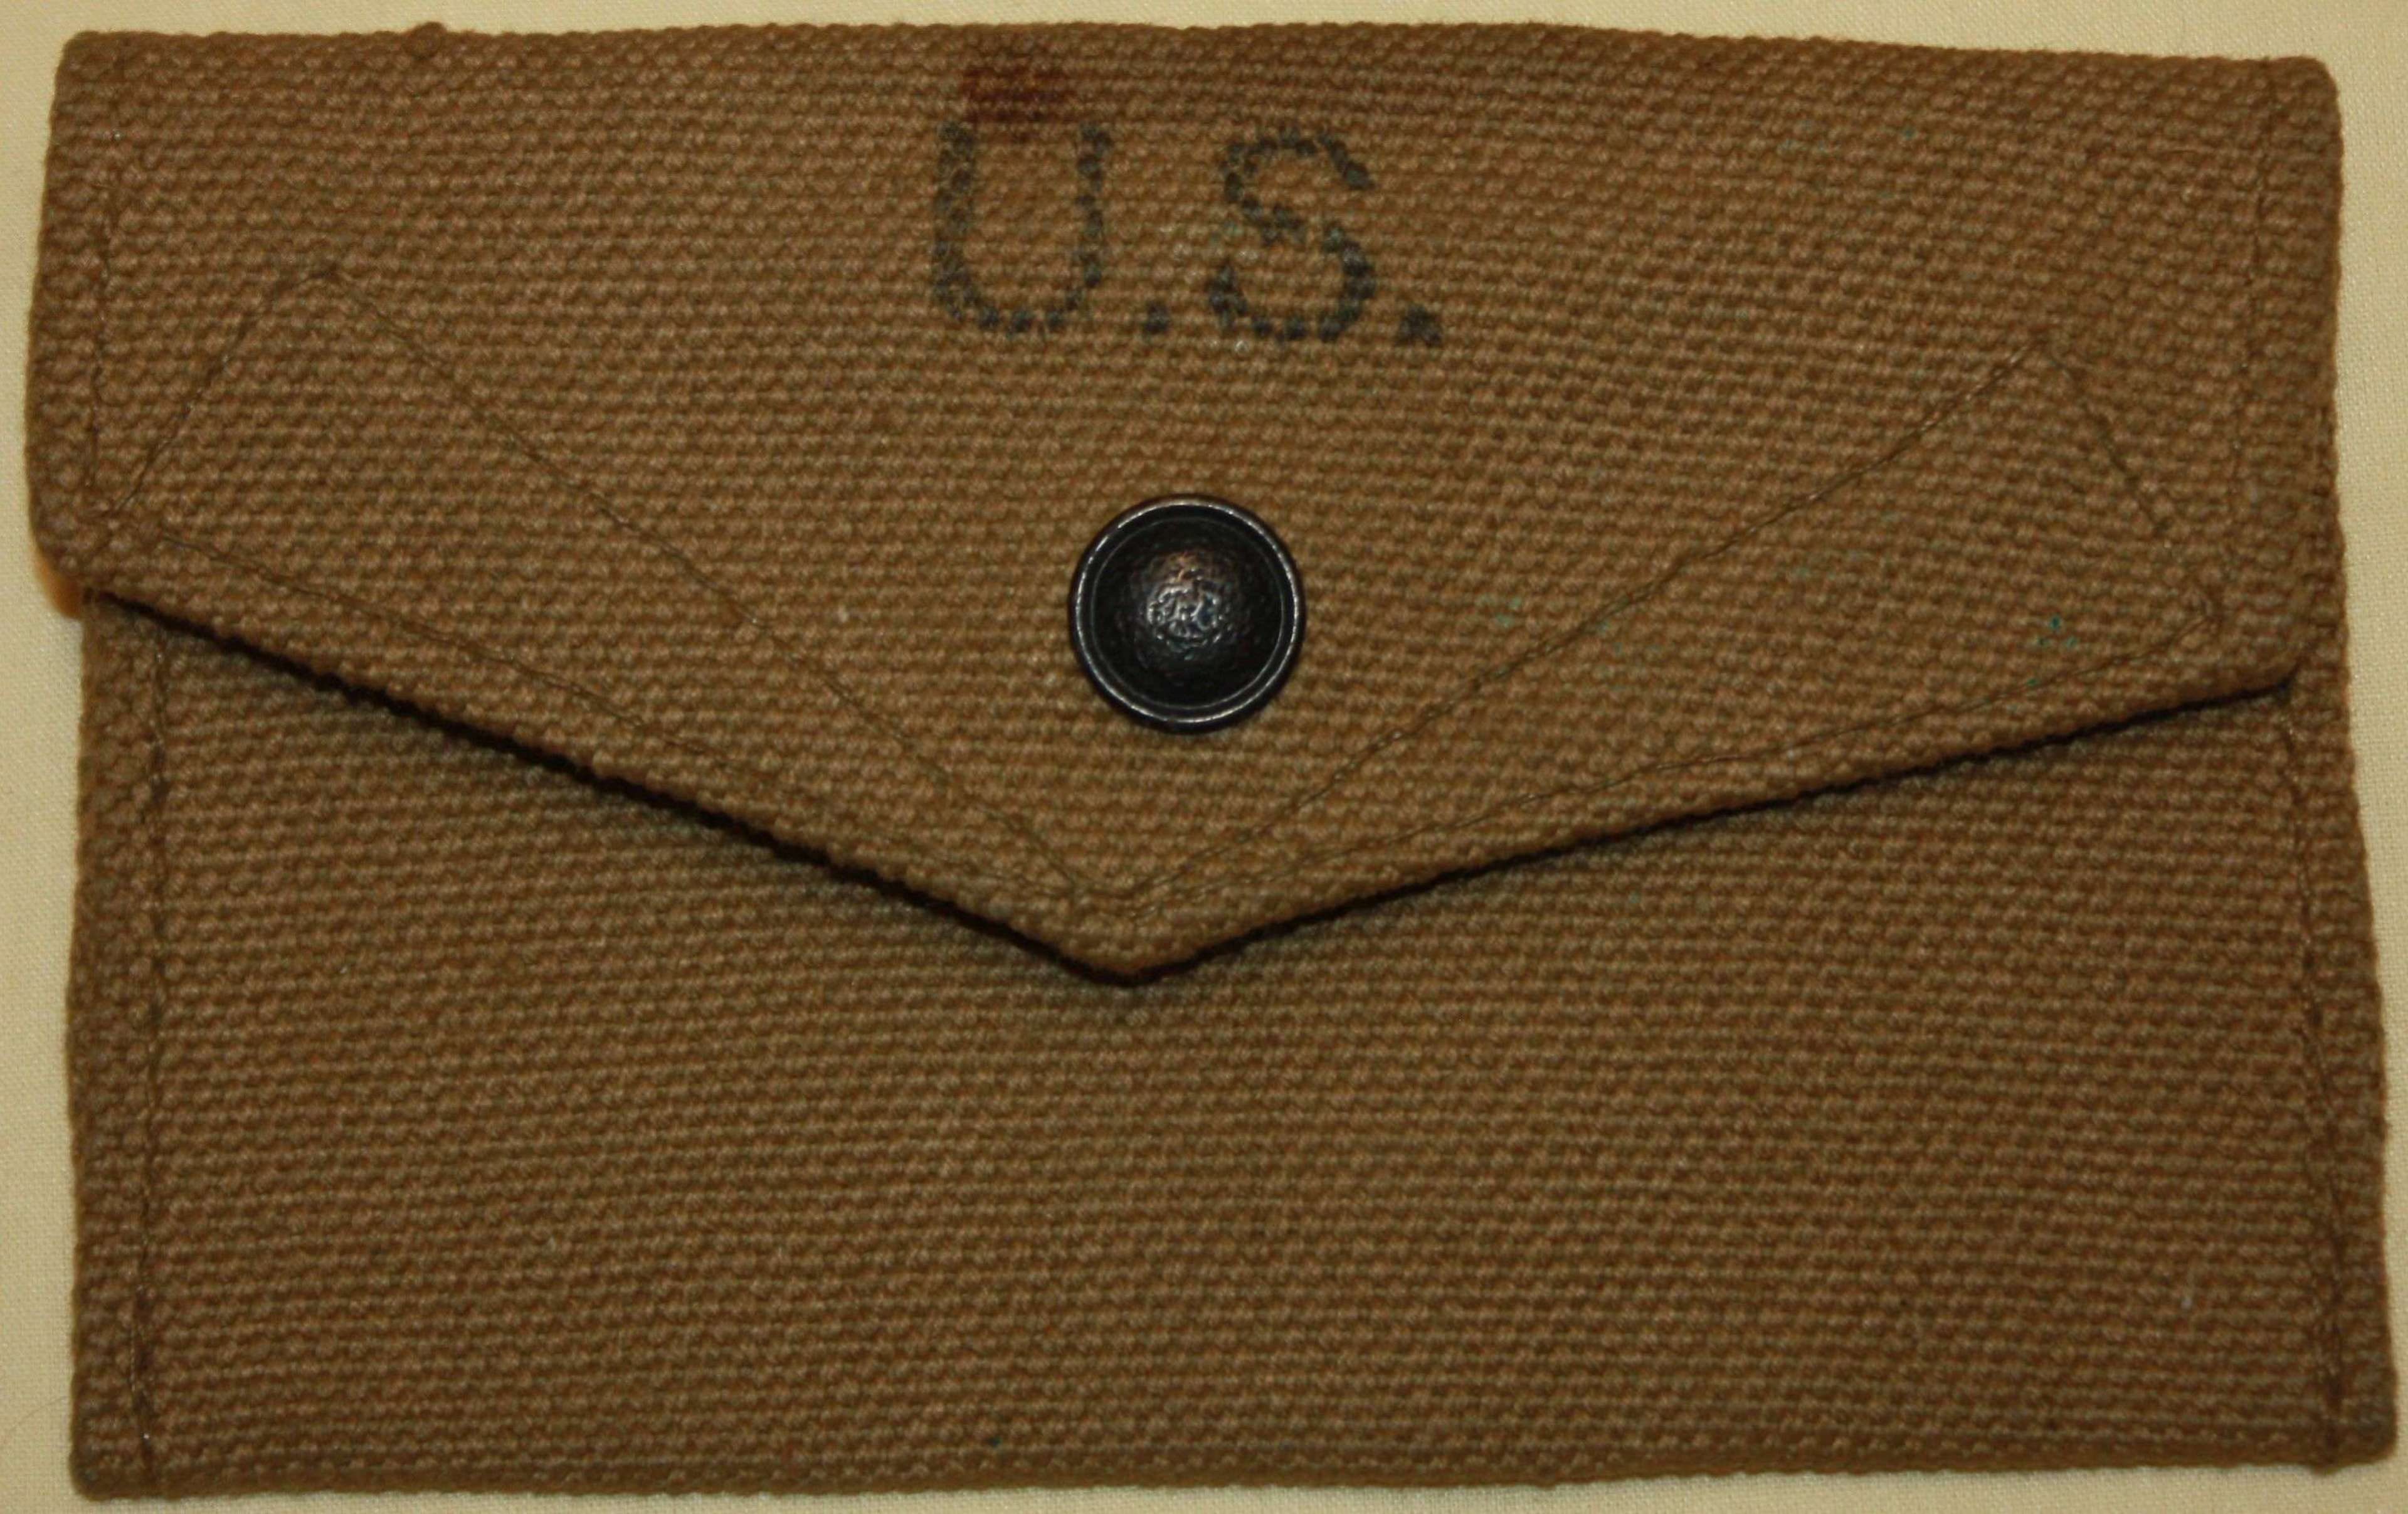 A WWII 1944 DATED BRITISH MADE ( FINNIGANS ) US FIELD DRESSING POUCH